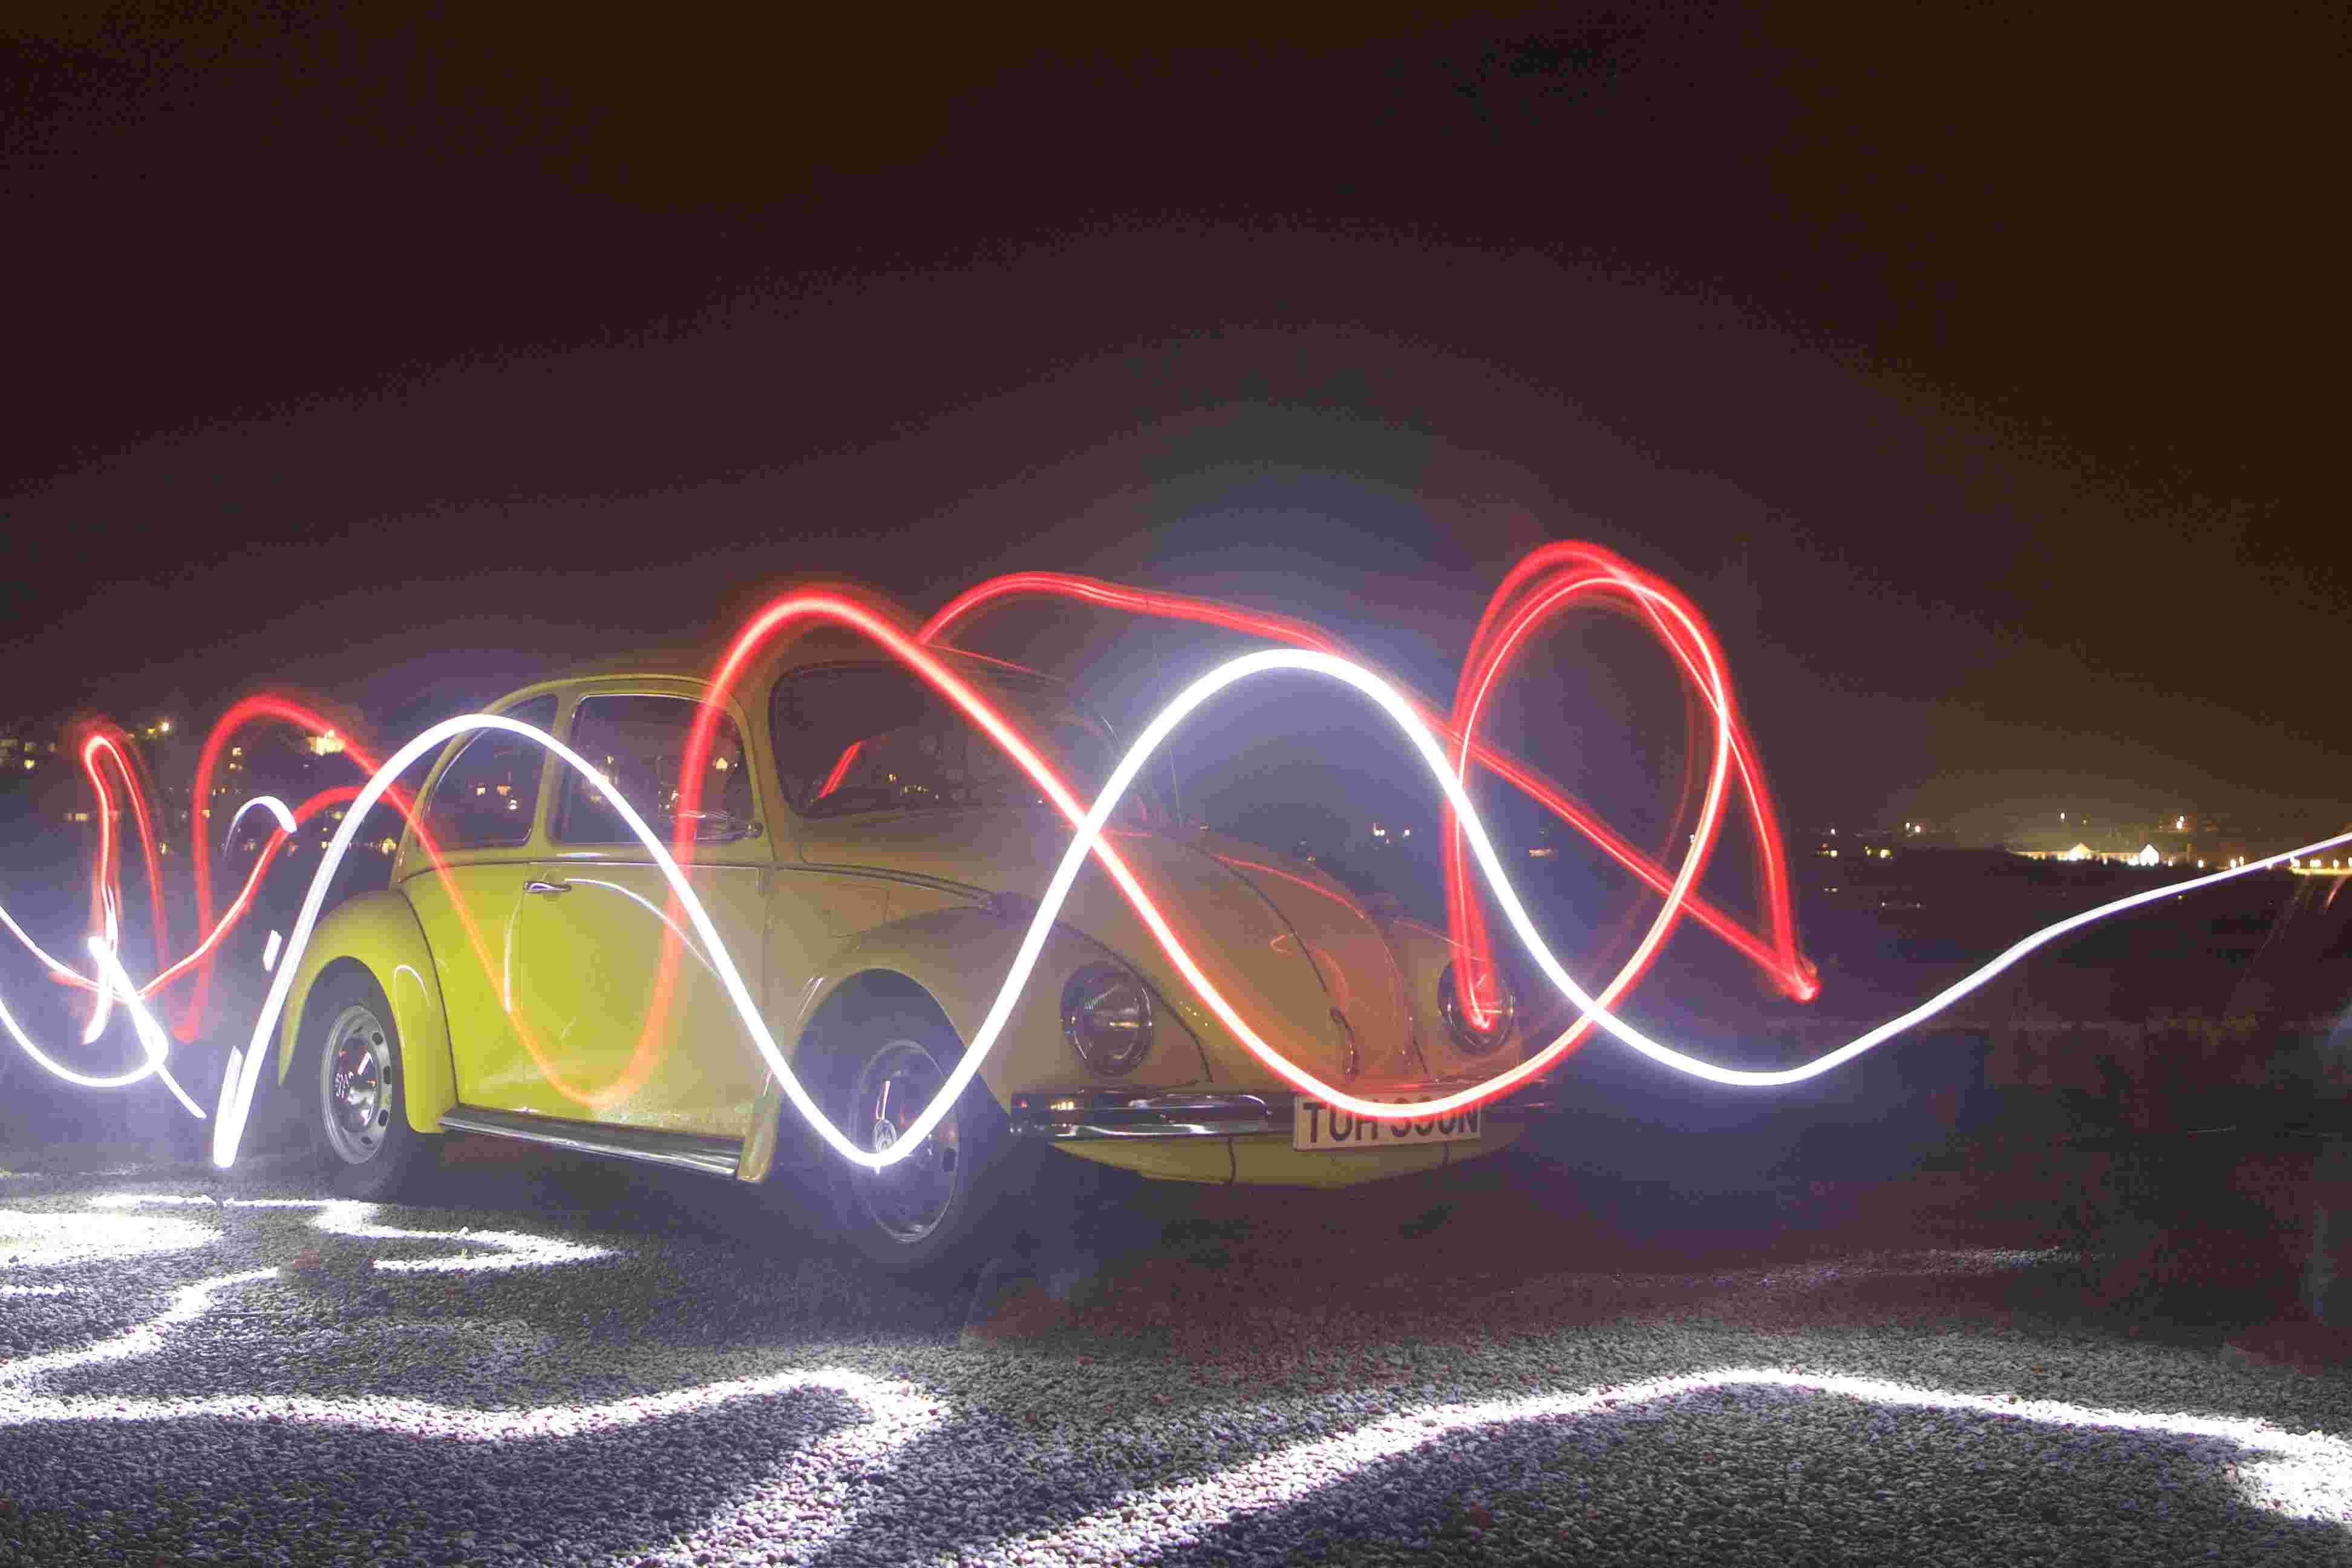 Light trails in front of Volkswagen Beetle